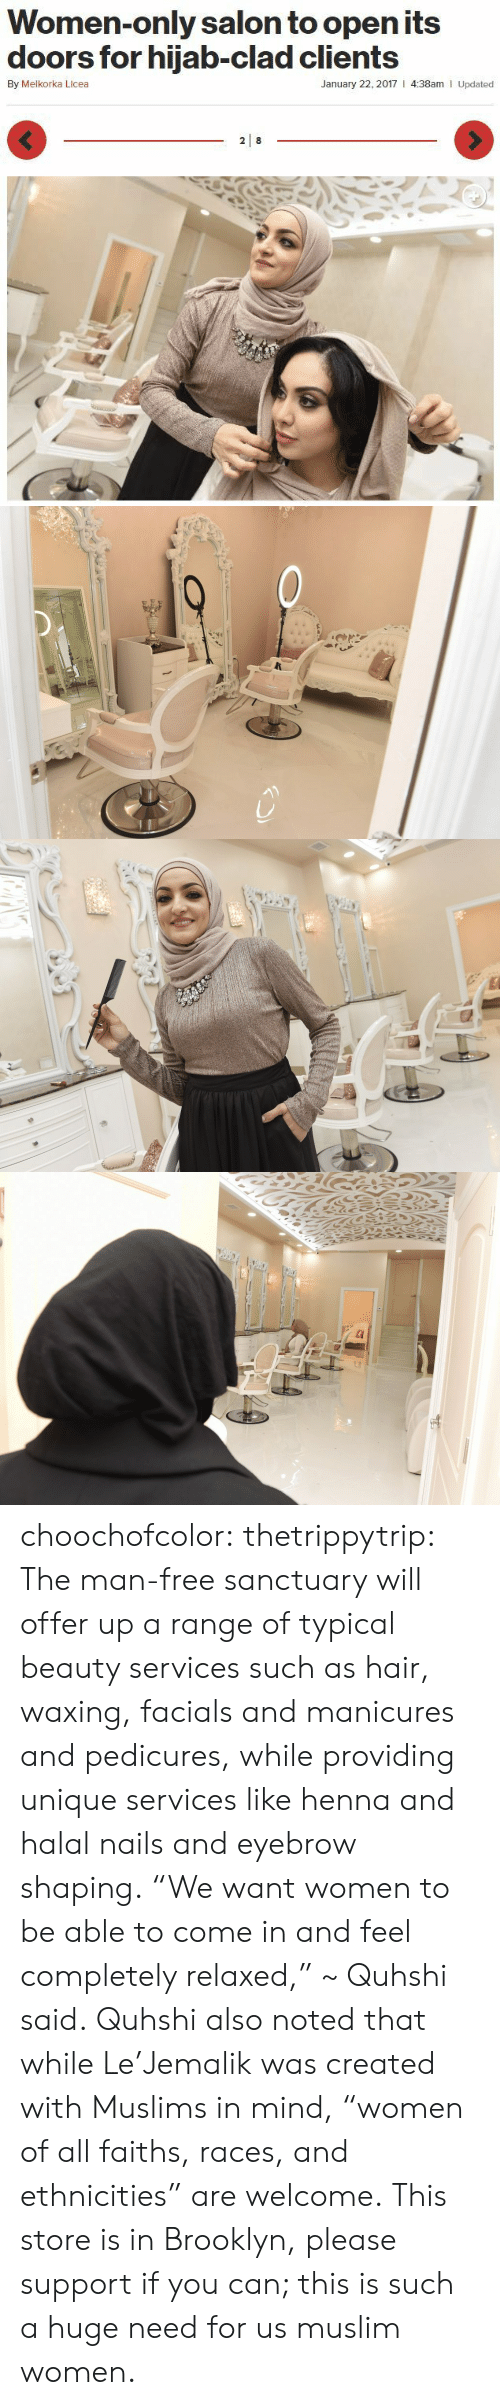 Women-Only Salon to Open Its Doors for Hijab-Clad Clients by